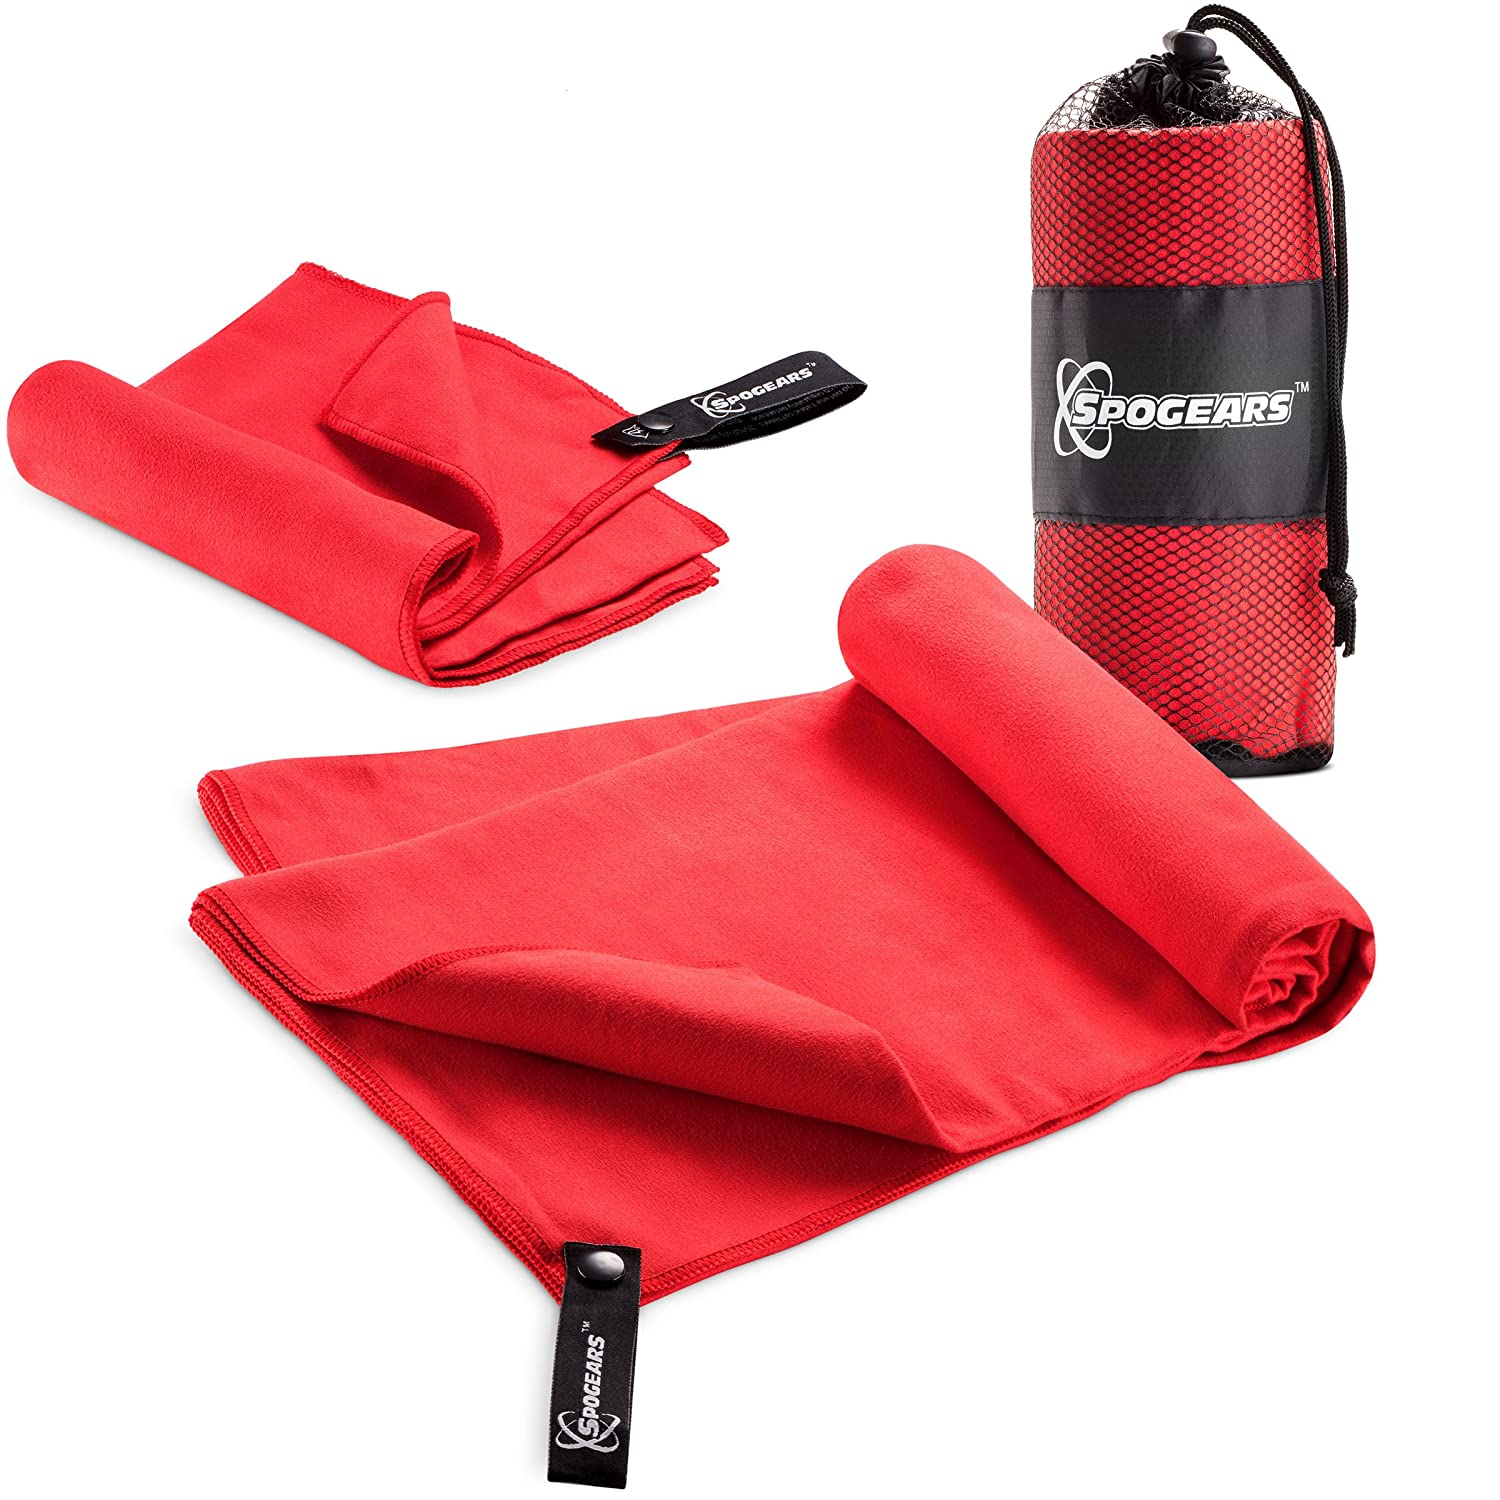 Microfiber Towels Set By Spogears - Gym Towel Set Includes An XL 58x30'' Camping Towel + Small Hand Travel Towel - Compact/Lightweight Swimming Sports Towel - Super Absorbent & Quick Drying Towel Super Absorbent Travel